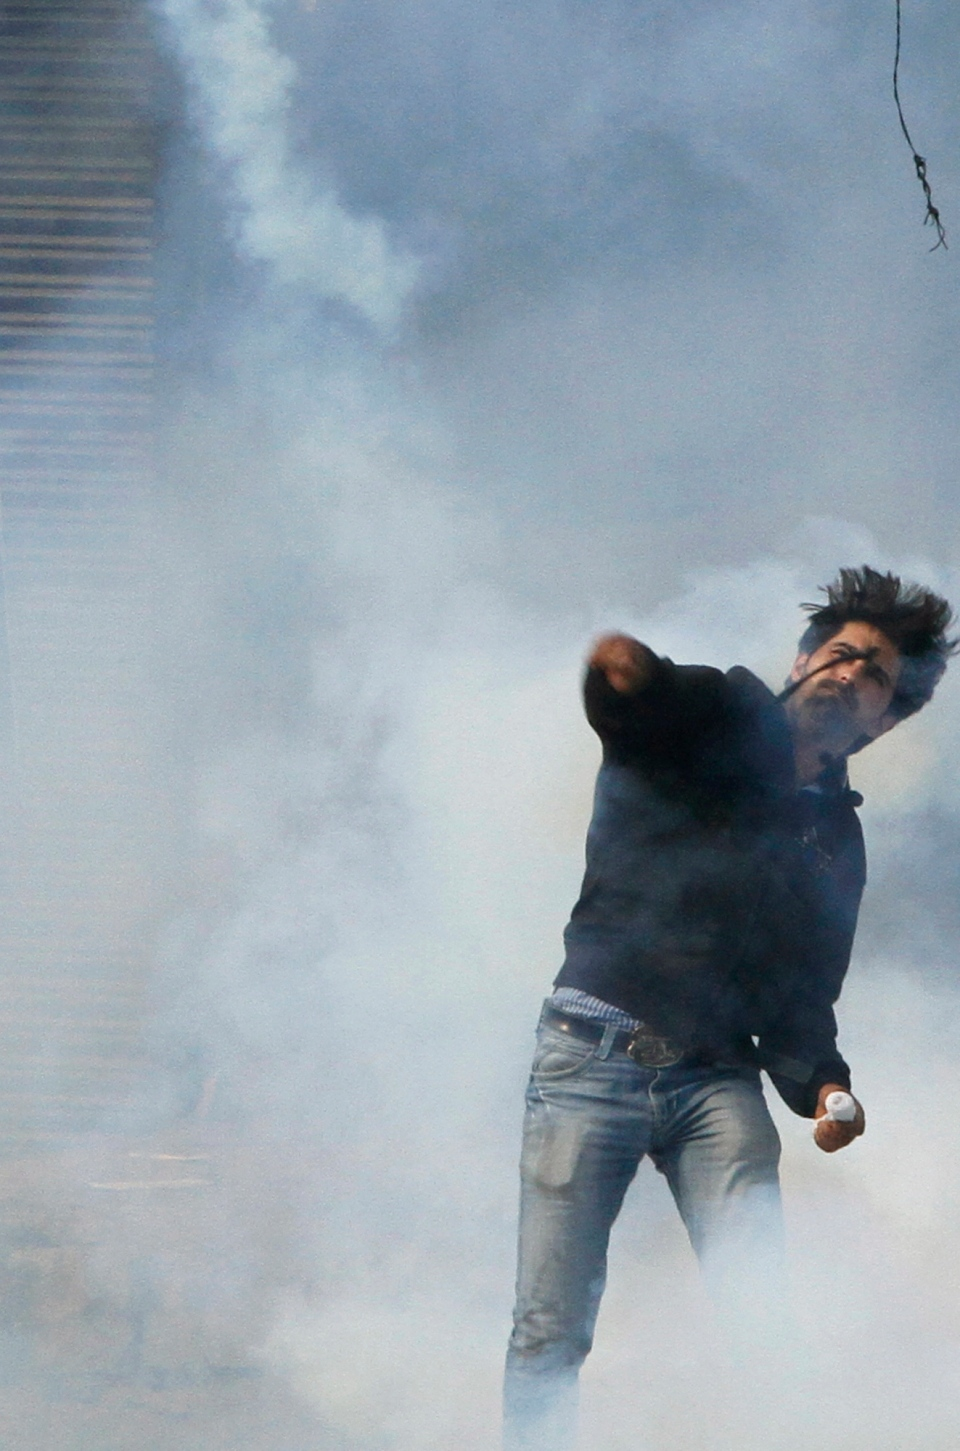 A Kashmiri Shiite Muslim throws back an exploded tear gas shell at Indian policemen after being stopped by police during a Muharram procession in Srinagar, India, Wednesday, Nov. 13, 2013. (AP / Mukhtar Khan)